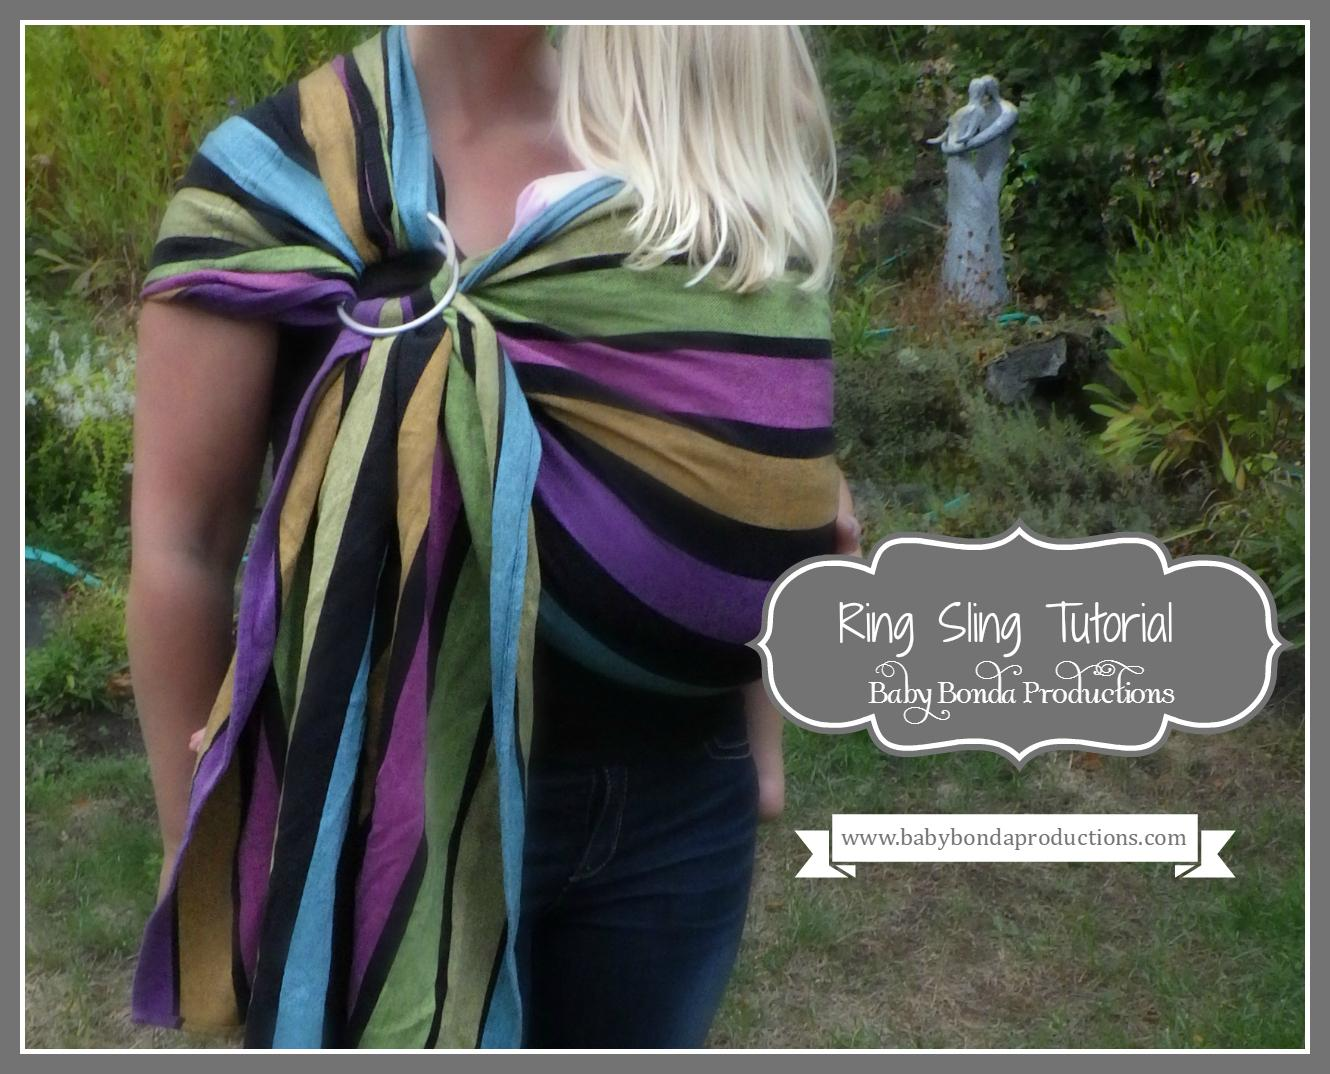 baby ring sling tutorial - sew your own baby carrier | wanda b